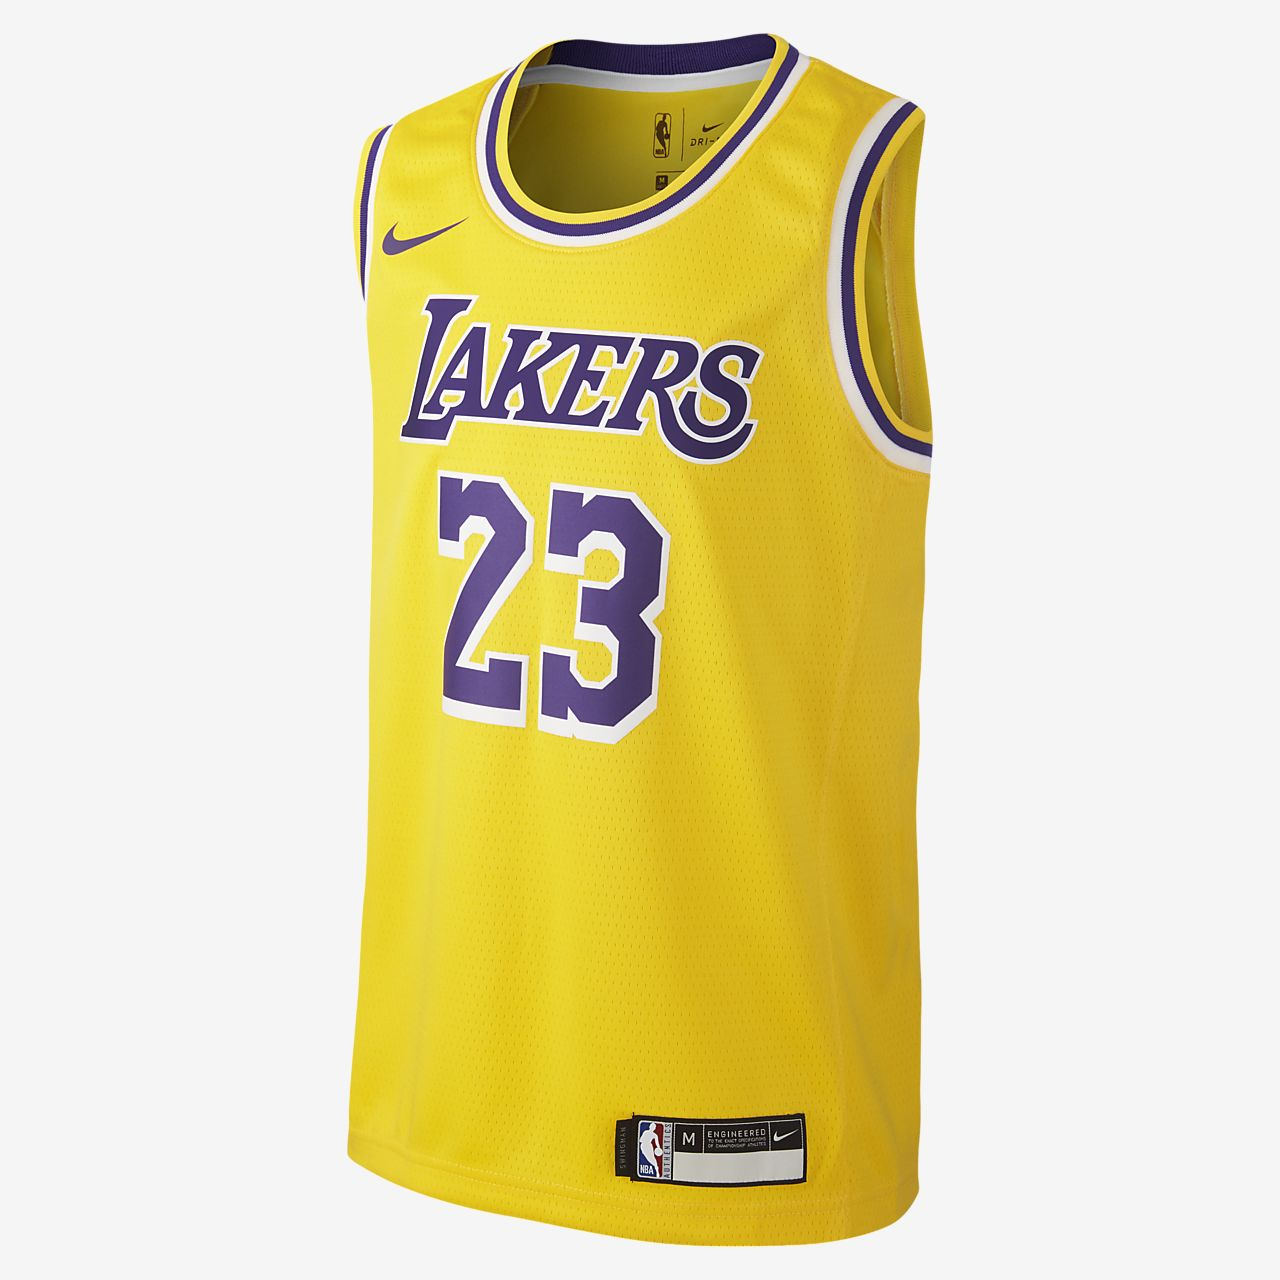 new arrival d91b0 fe321 LeBron James Los Angeles Lakers Nike Icon Edition Swingman NBA-Trikot für  ältere Kinder